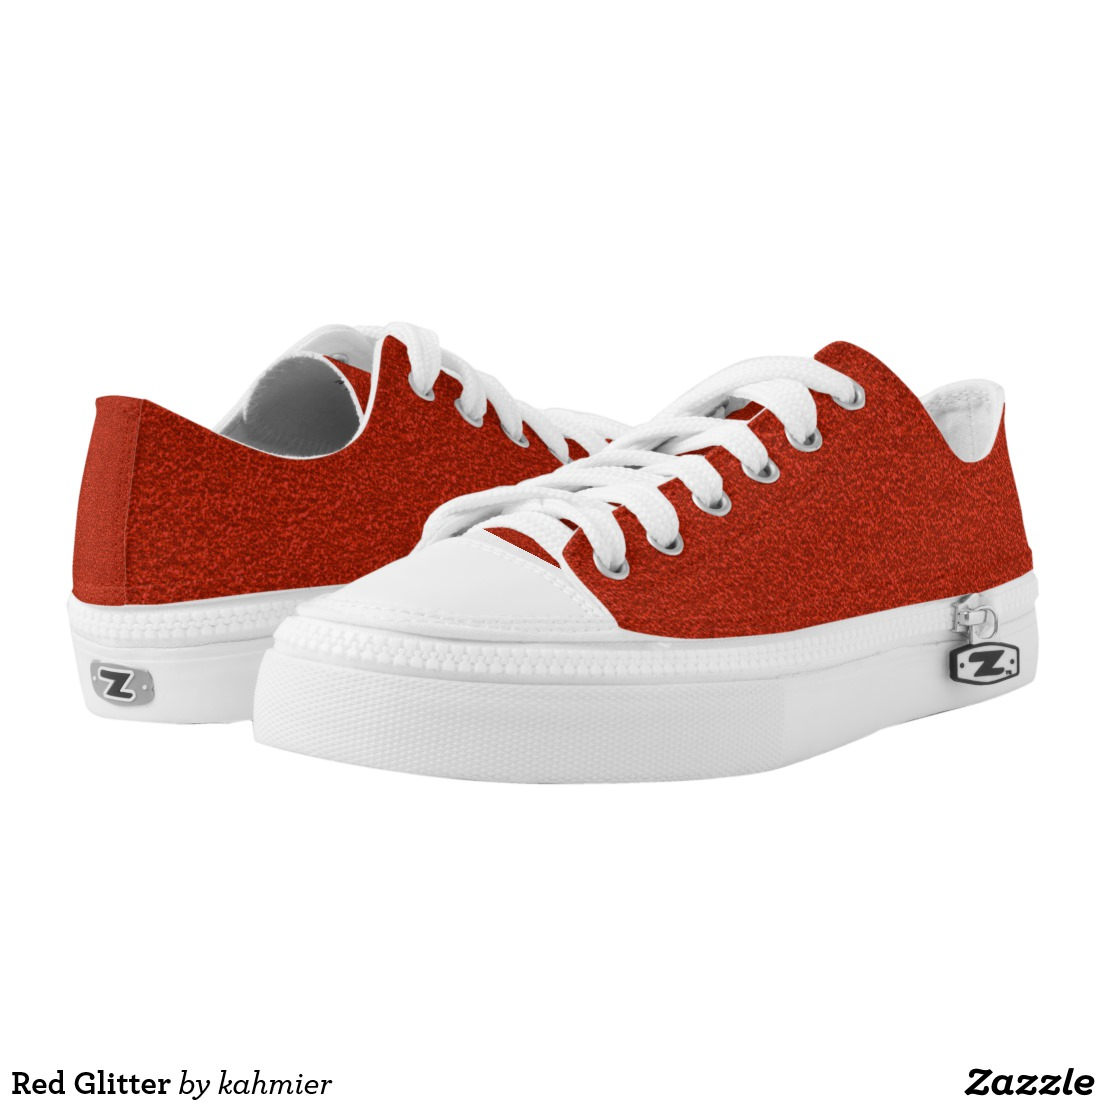 Red Glitter Low-Top Sneakers